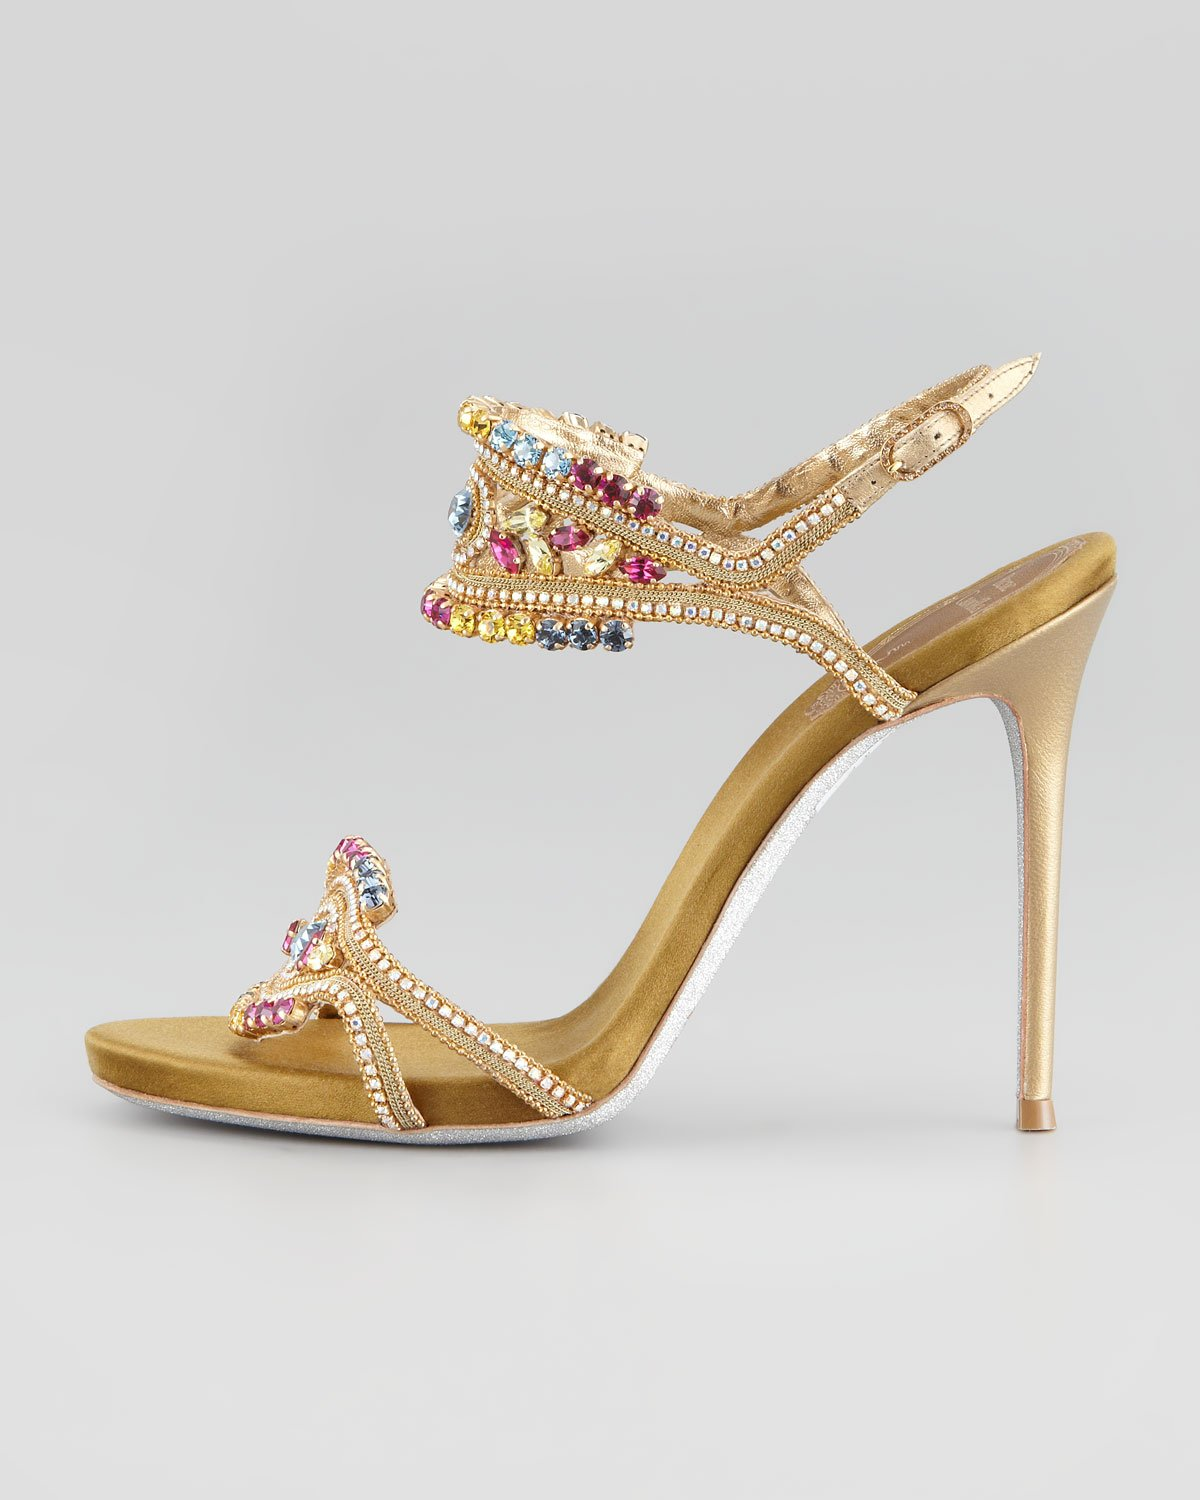 René Caovilla Crystal Embellished Caged Sandals looking for sale online wide range of sale online shopping online cheap online wiki sale online LpyyMi8